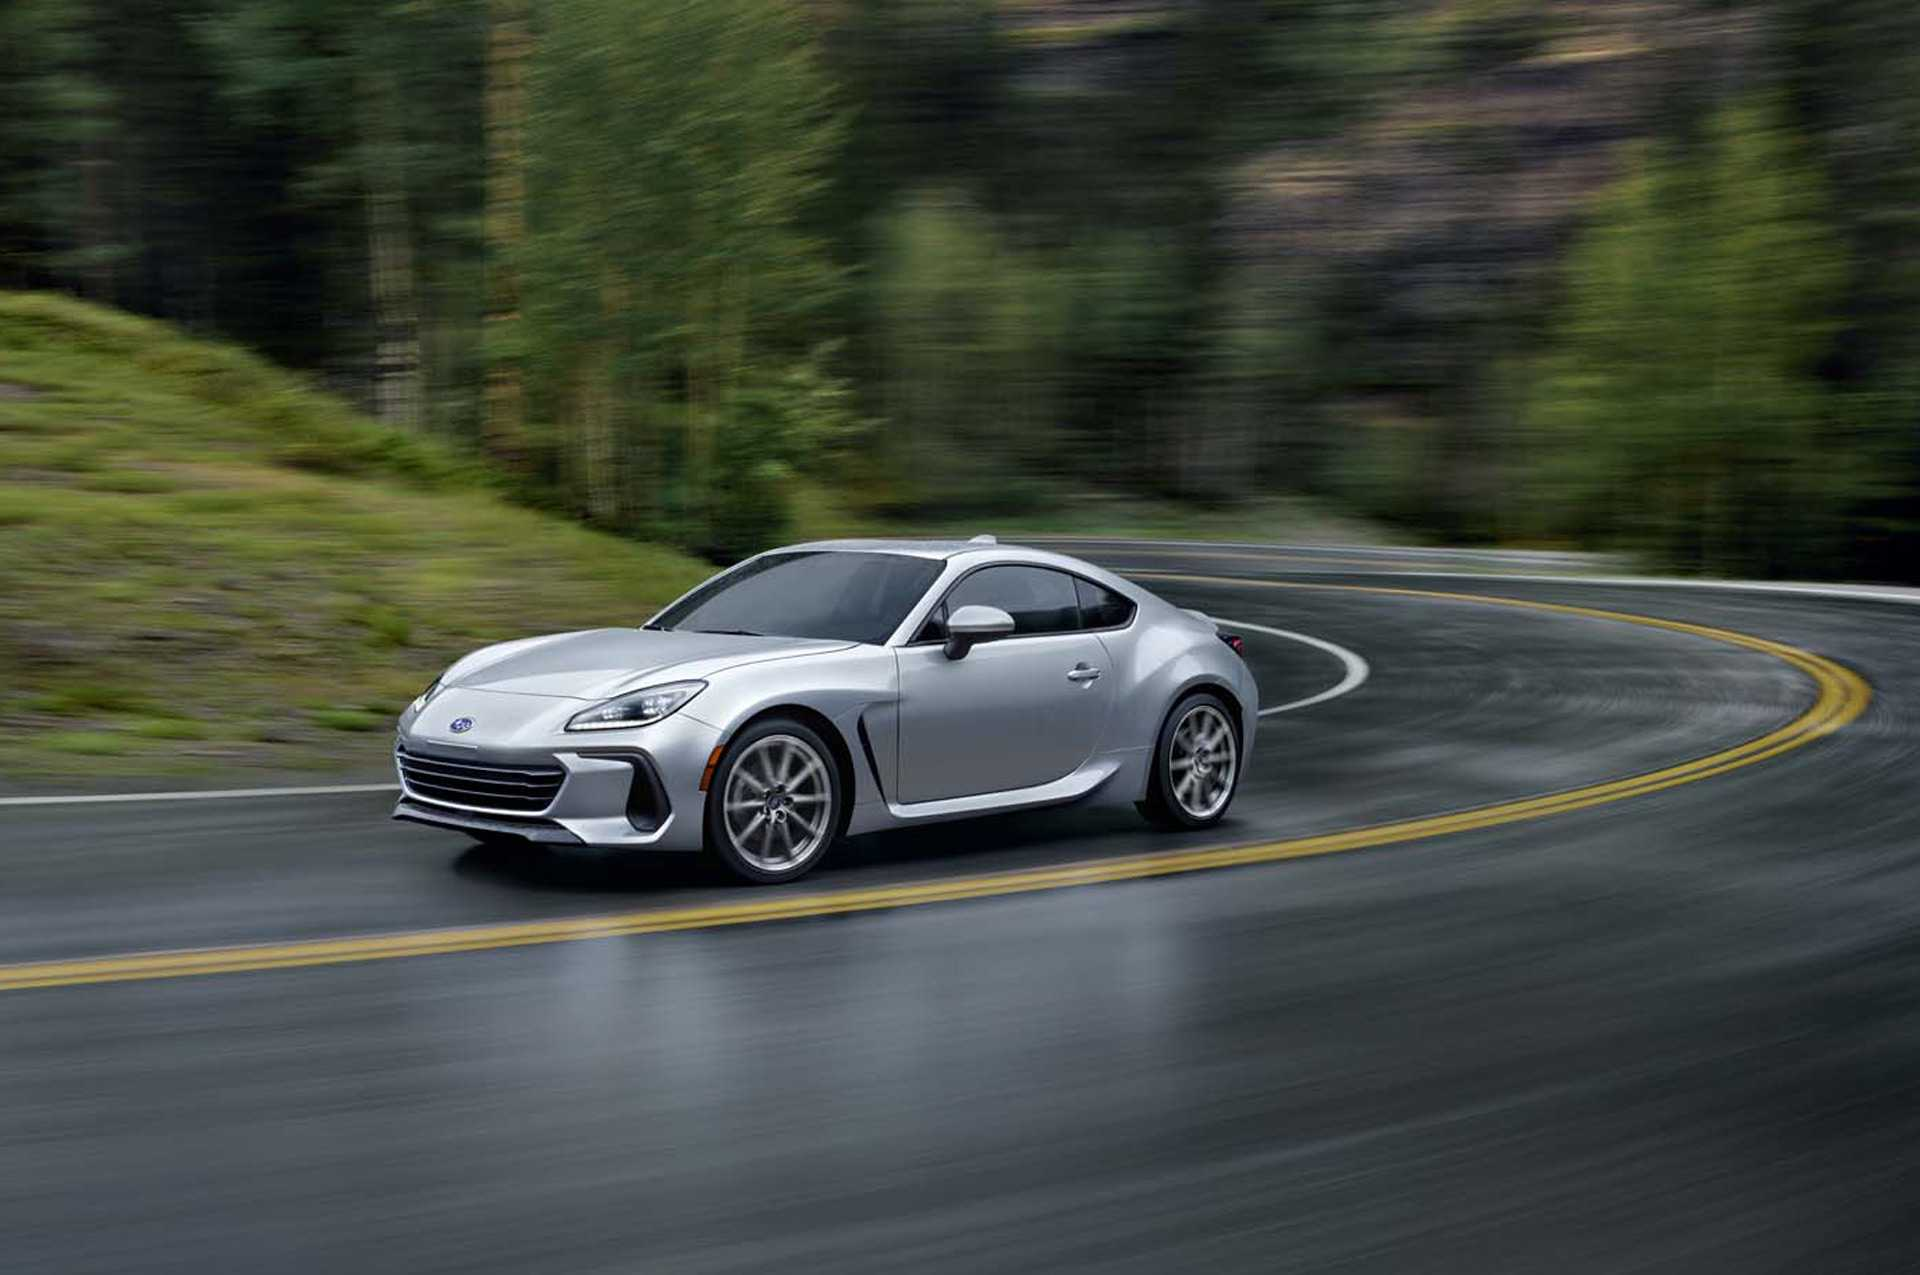 2022 Subaru BRZ Delivers More Power without Turbo Powertrain